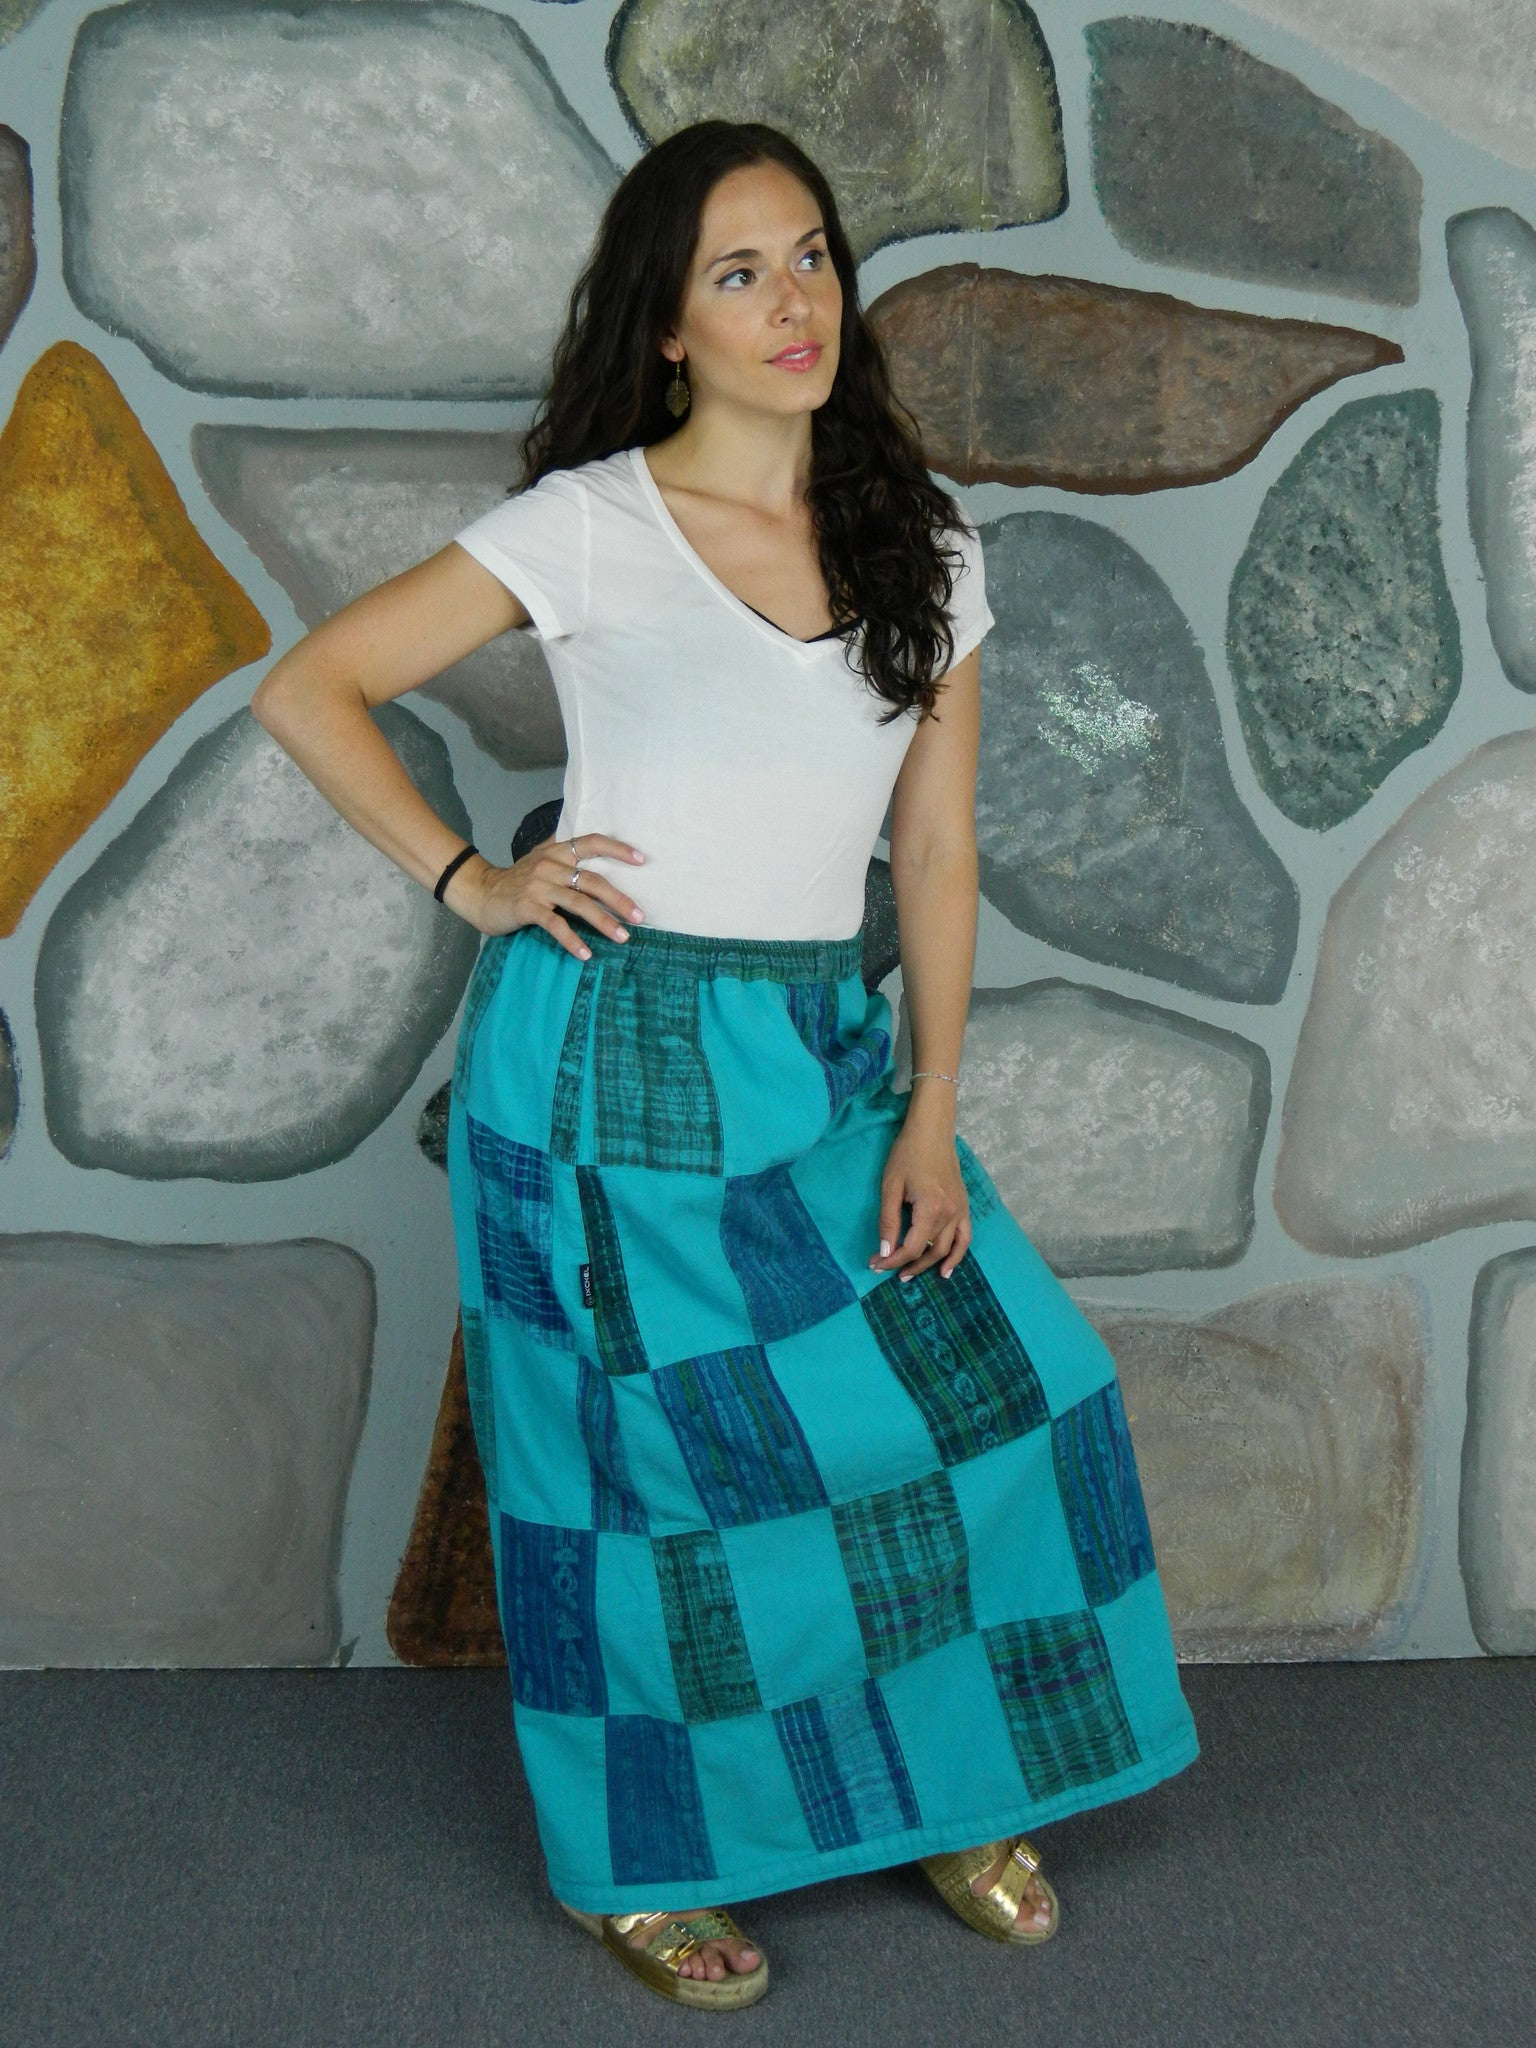 e416dc6ca7 Garment-Dyed Patchwork Skirt | Ixchel, Inc. - Handmade Apparel and ...